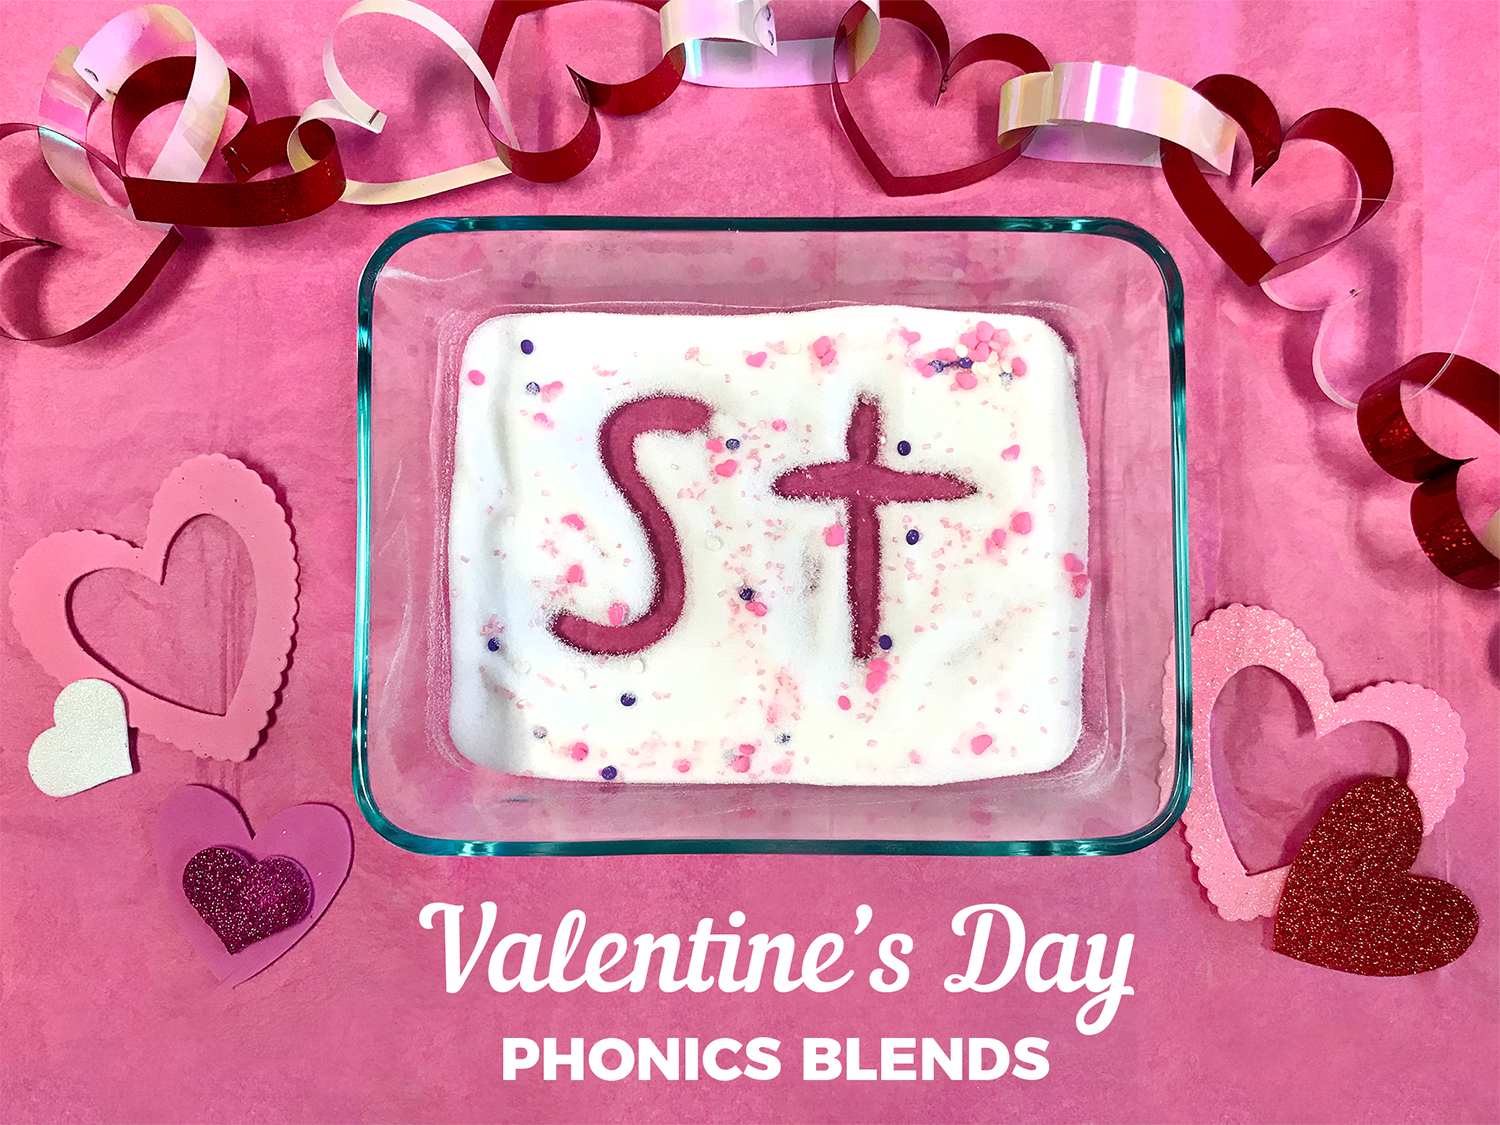 Valentine's Day Phonics Blends